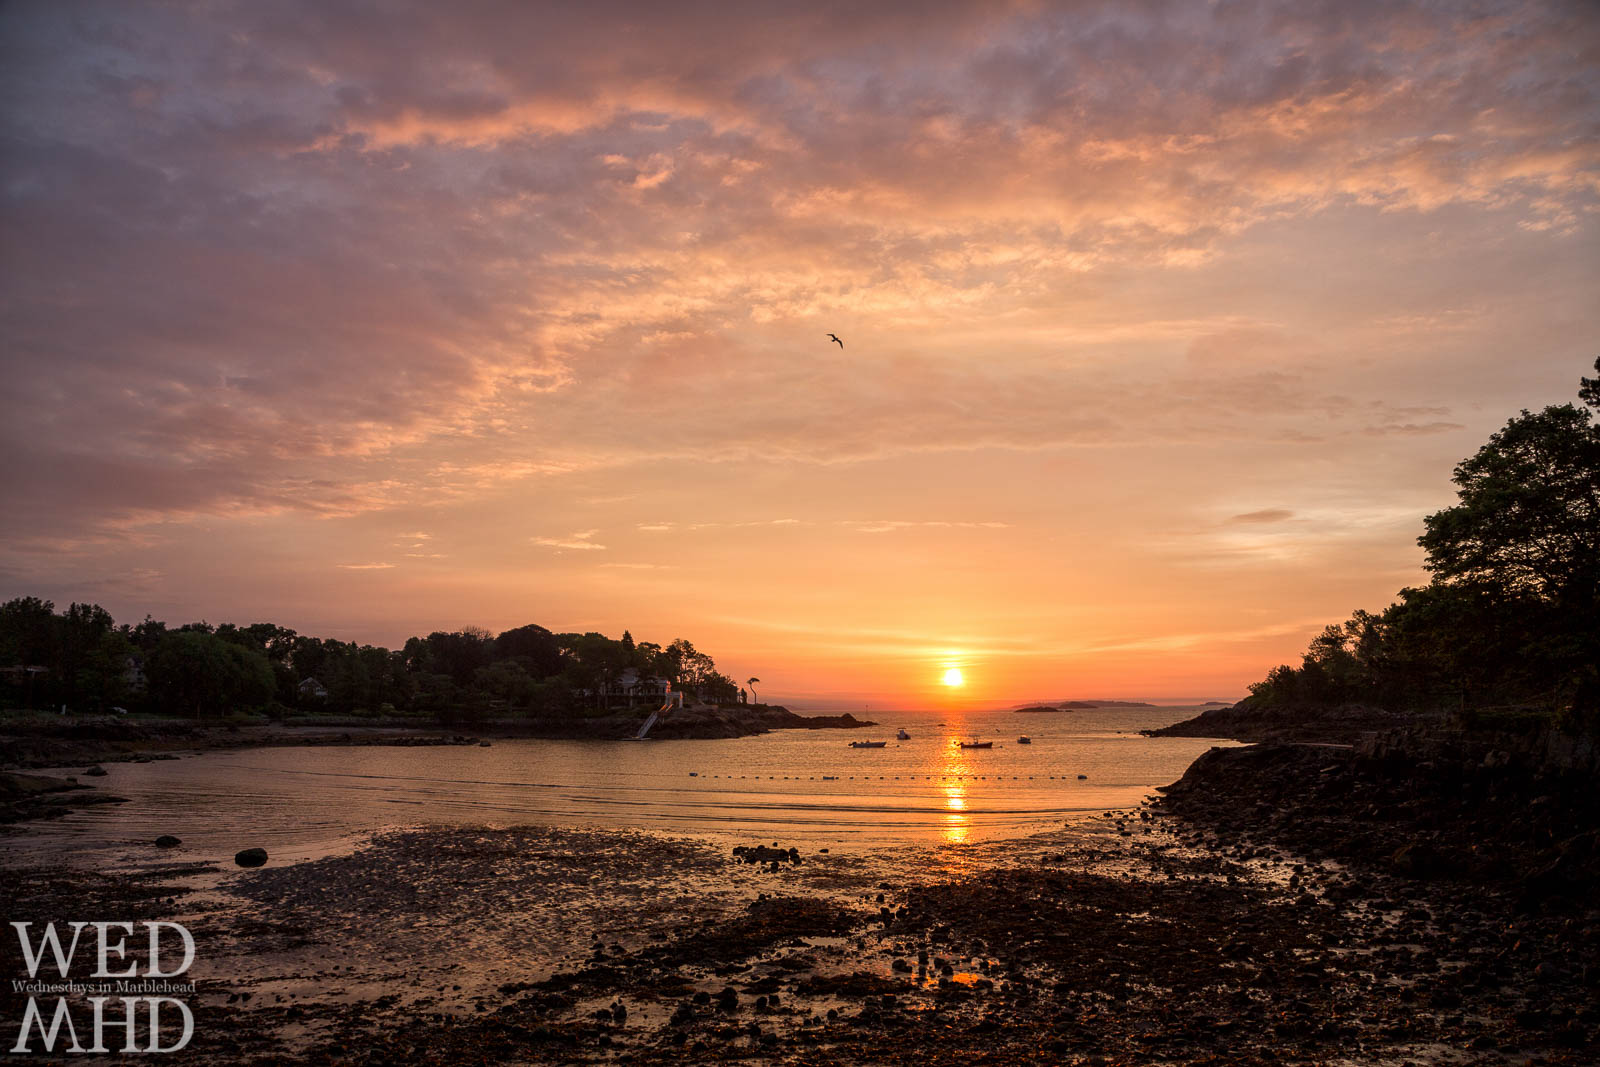 The Summer sunrise is captured at Doliber Cover at low tide with clouds reflecting the colors of a new day